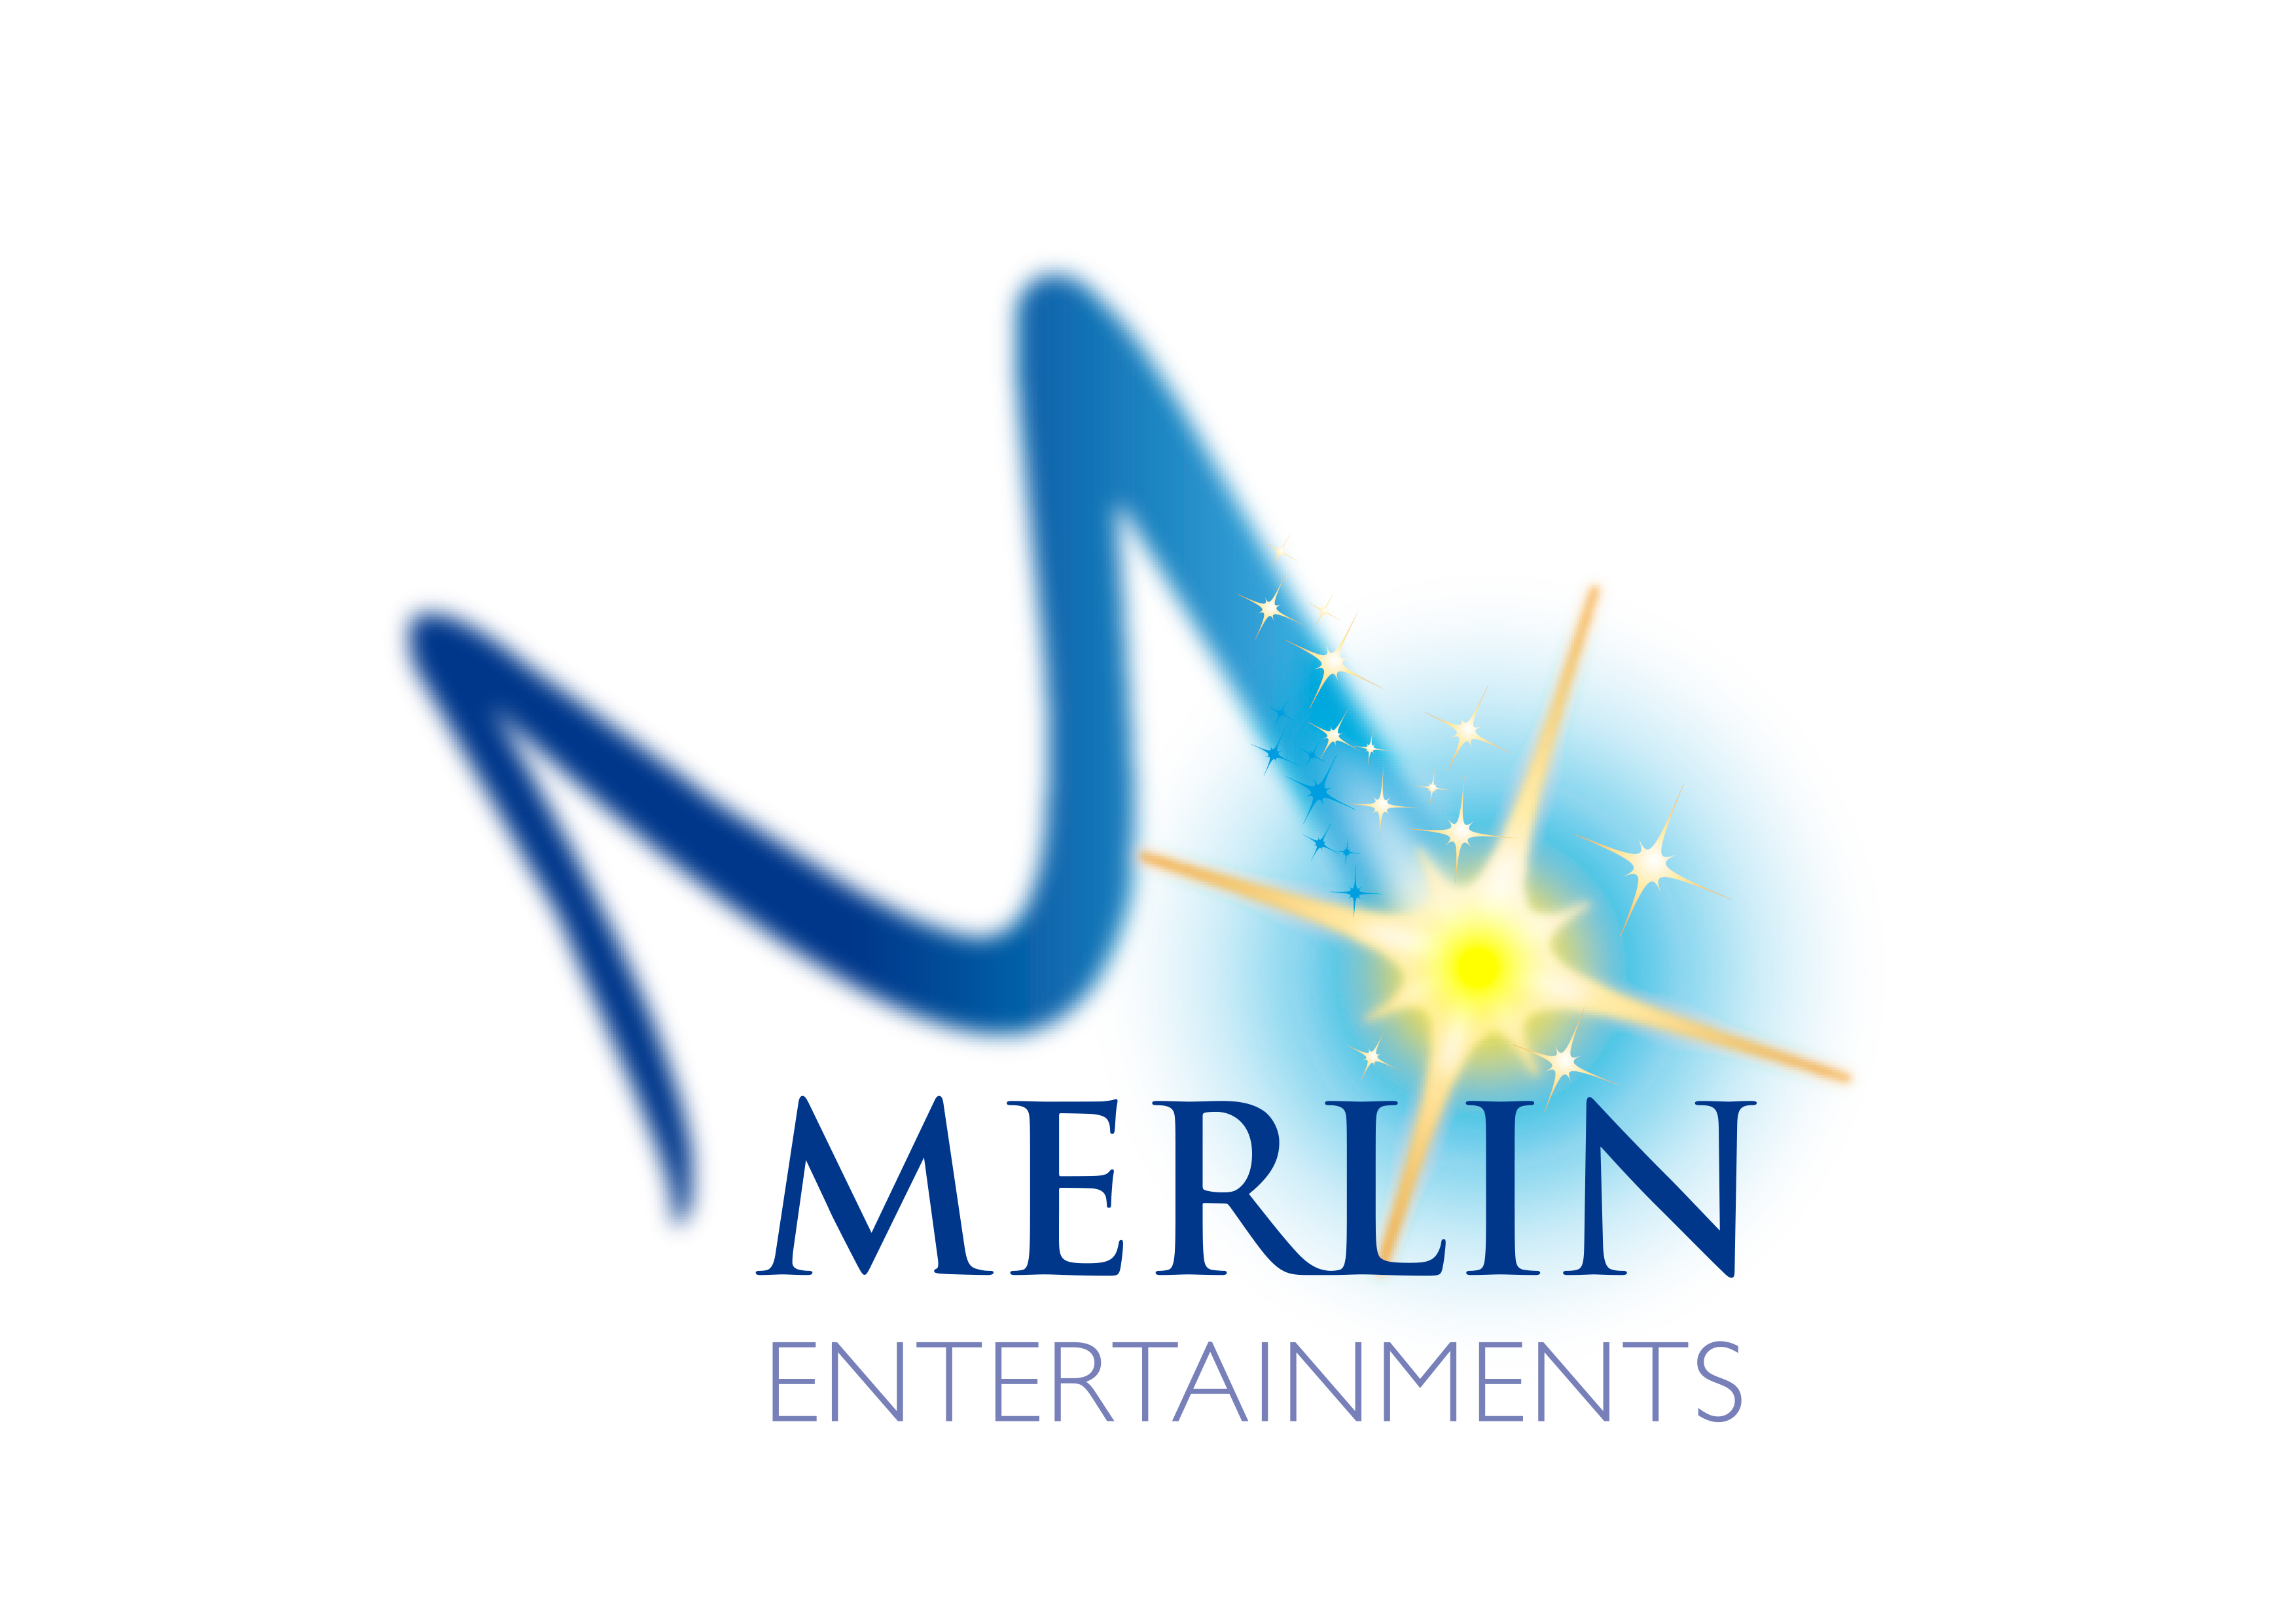 Merlin Entertainment Group Promotional Video